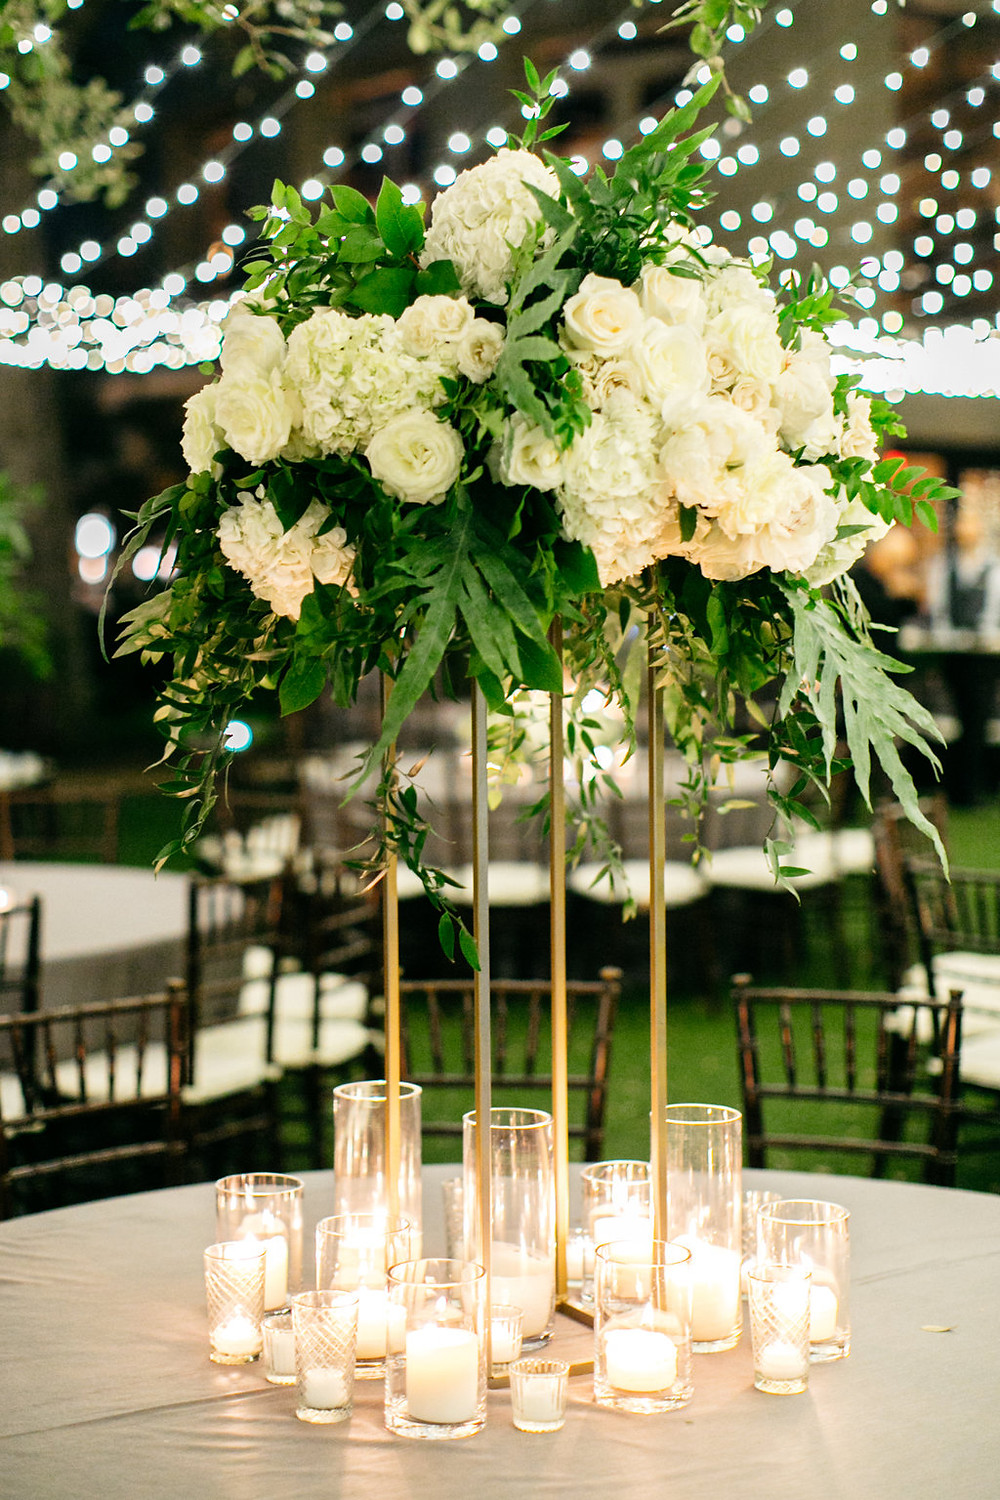 Roses and Hydrangea Tall topiary centerpiece on gold legs with white candles